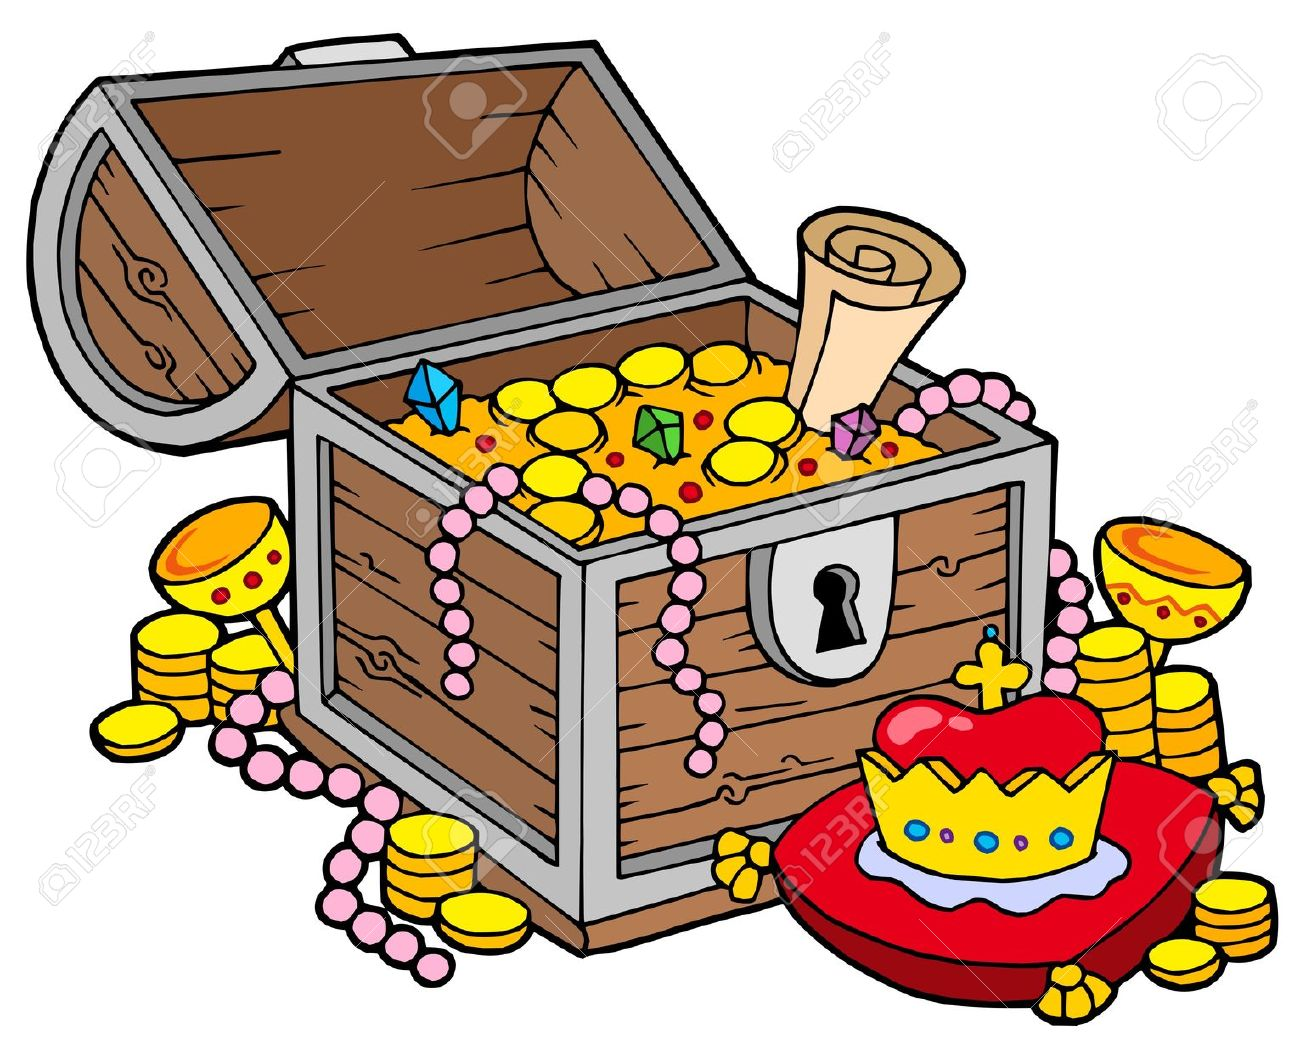 treasure clipart-treasure clipart-4